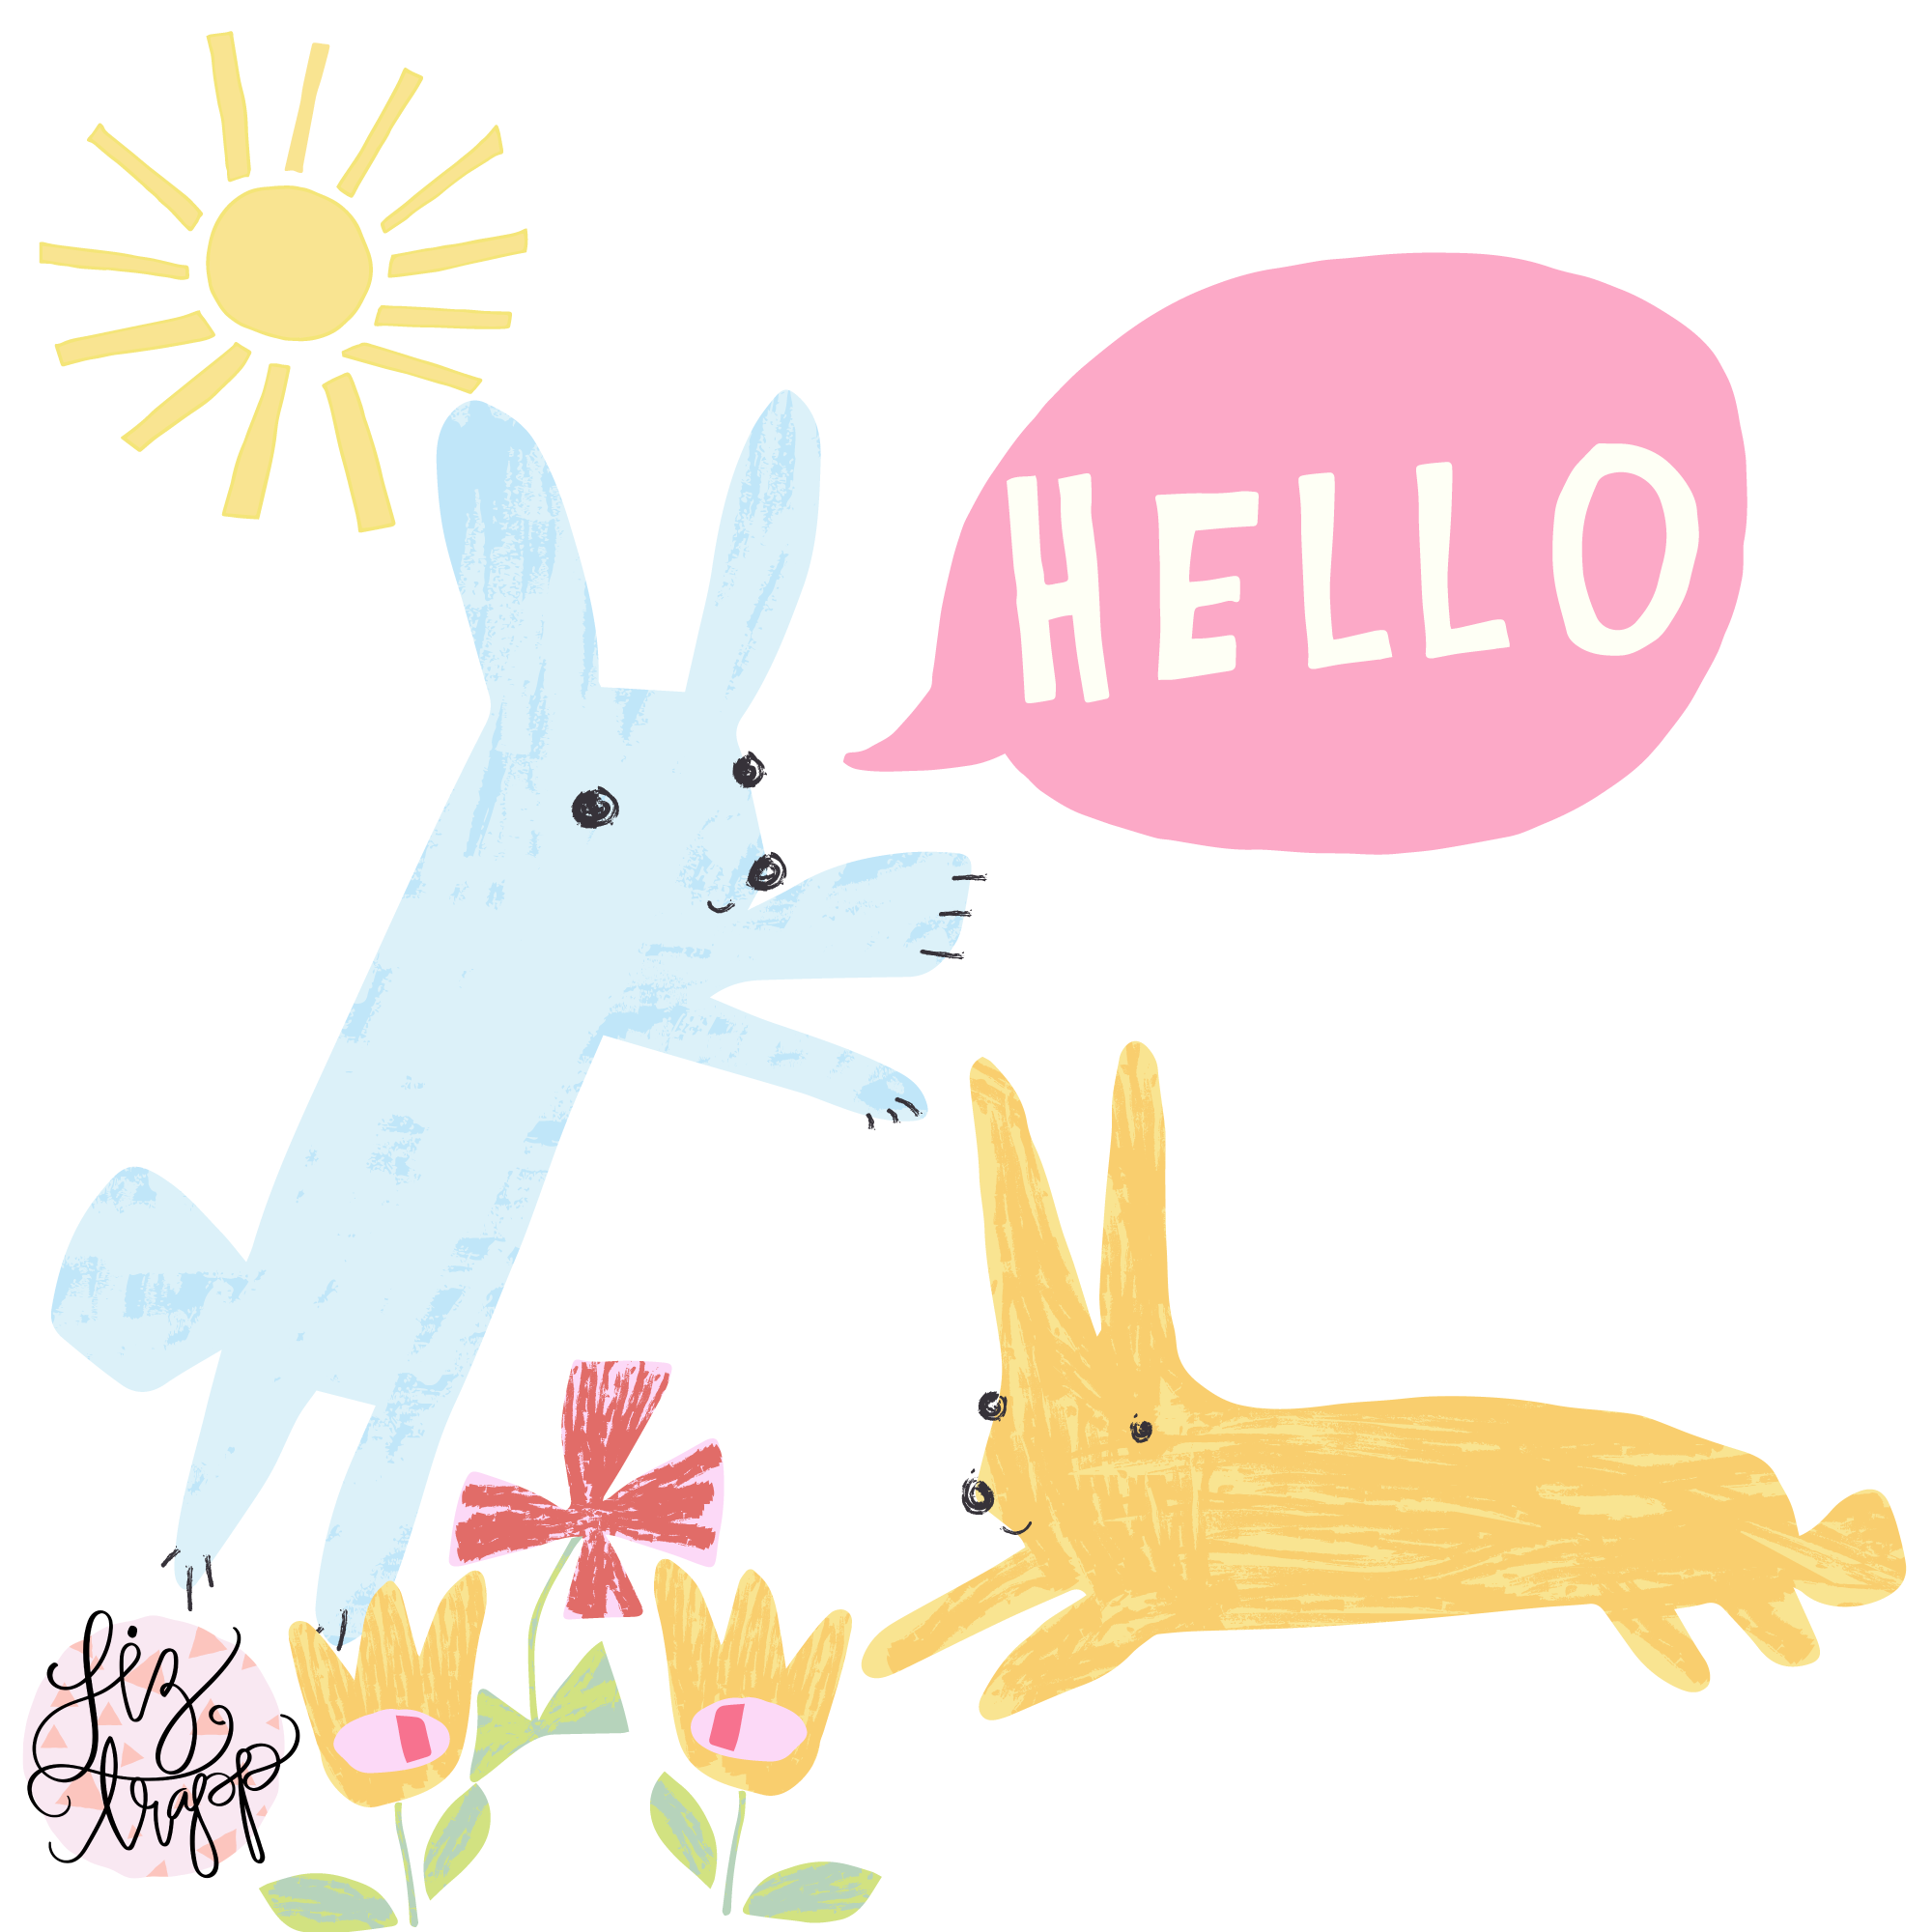 hello---from-kids-summer.png